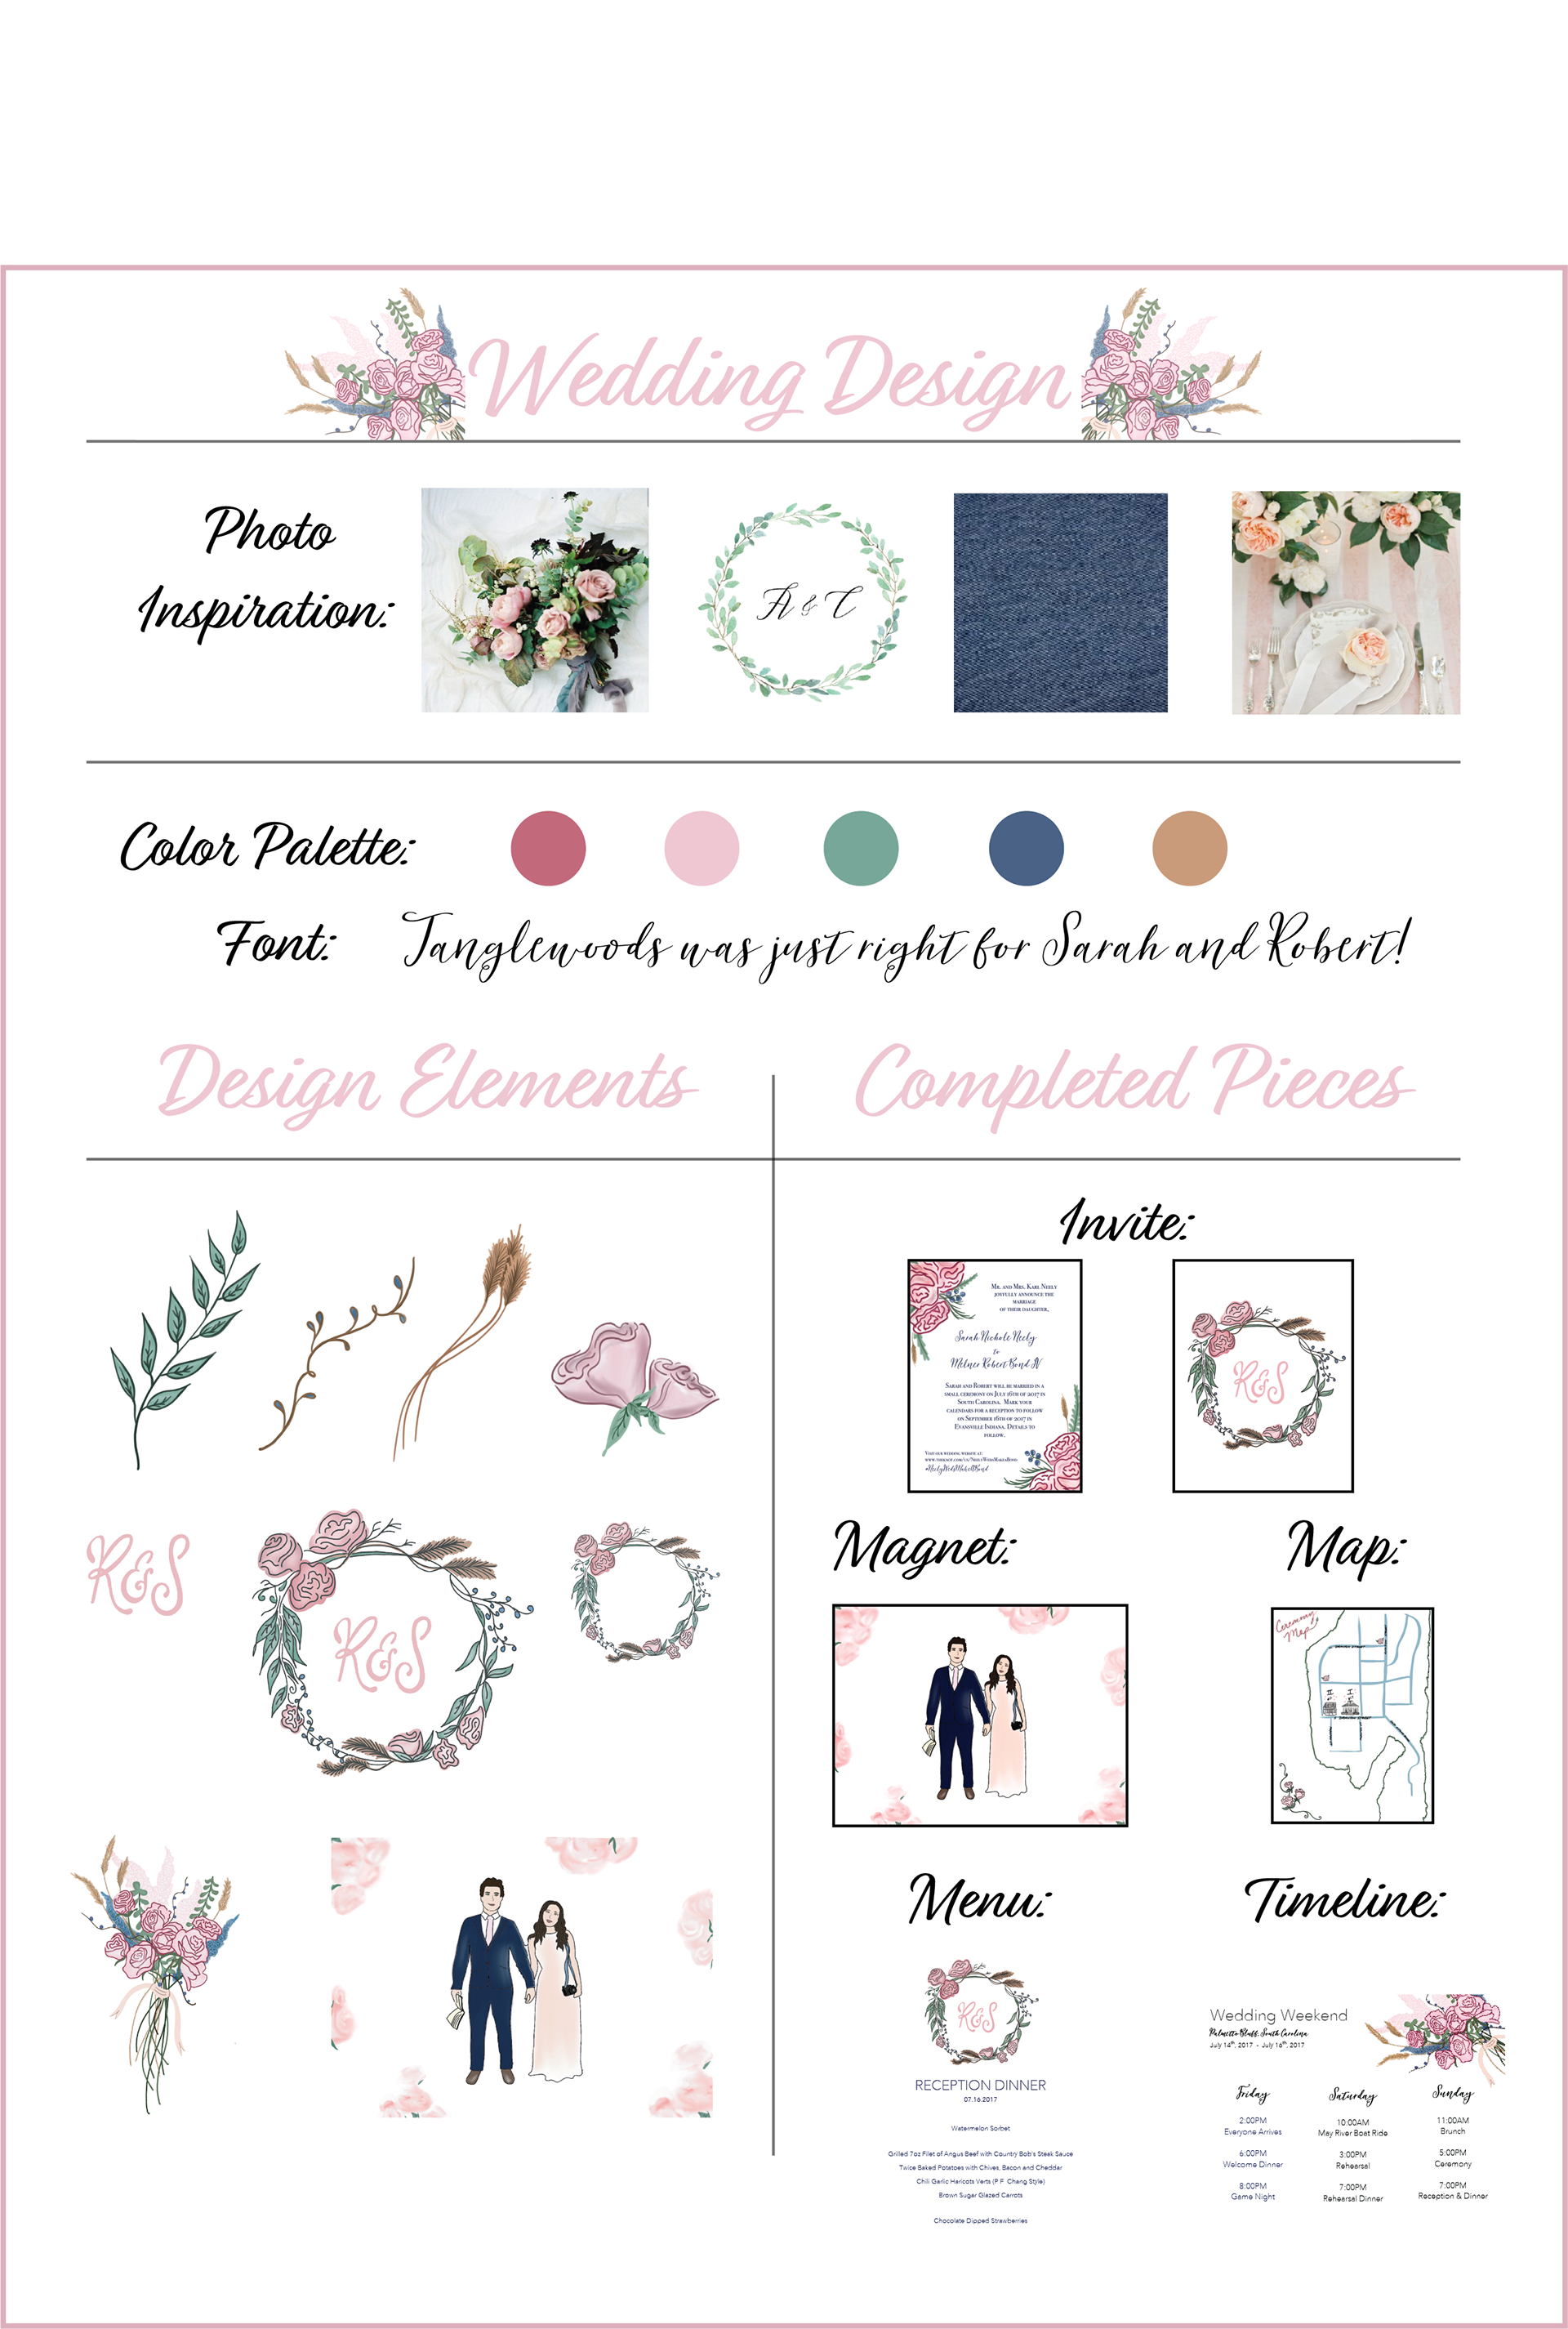 Suzanna Stapler - Wedding Design Form